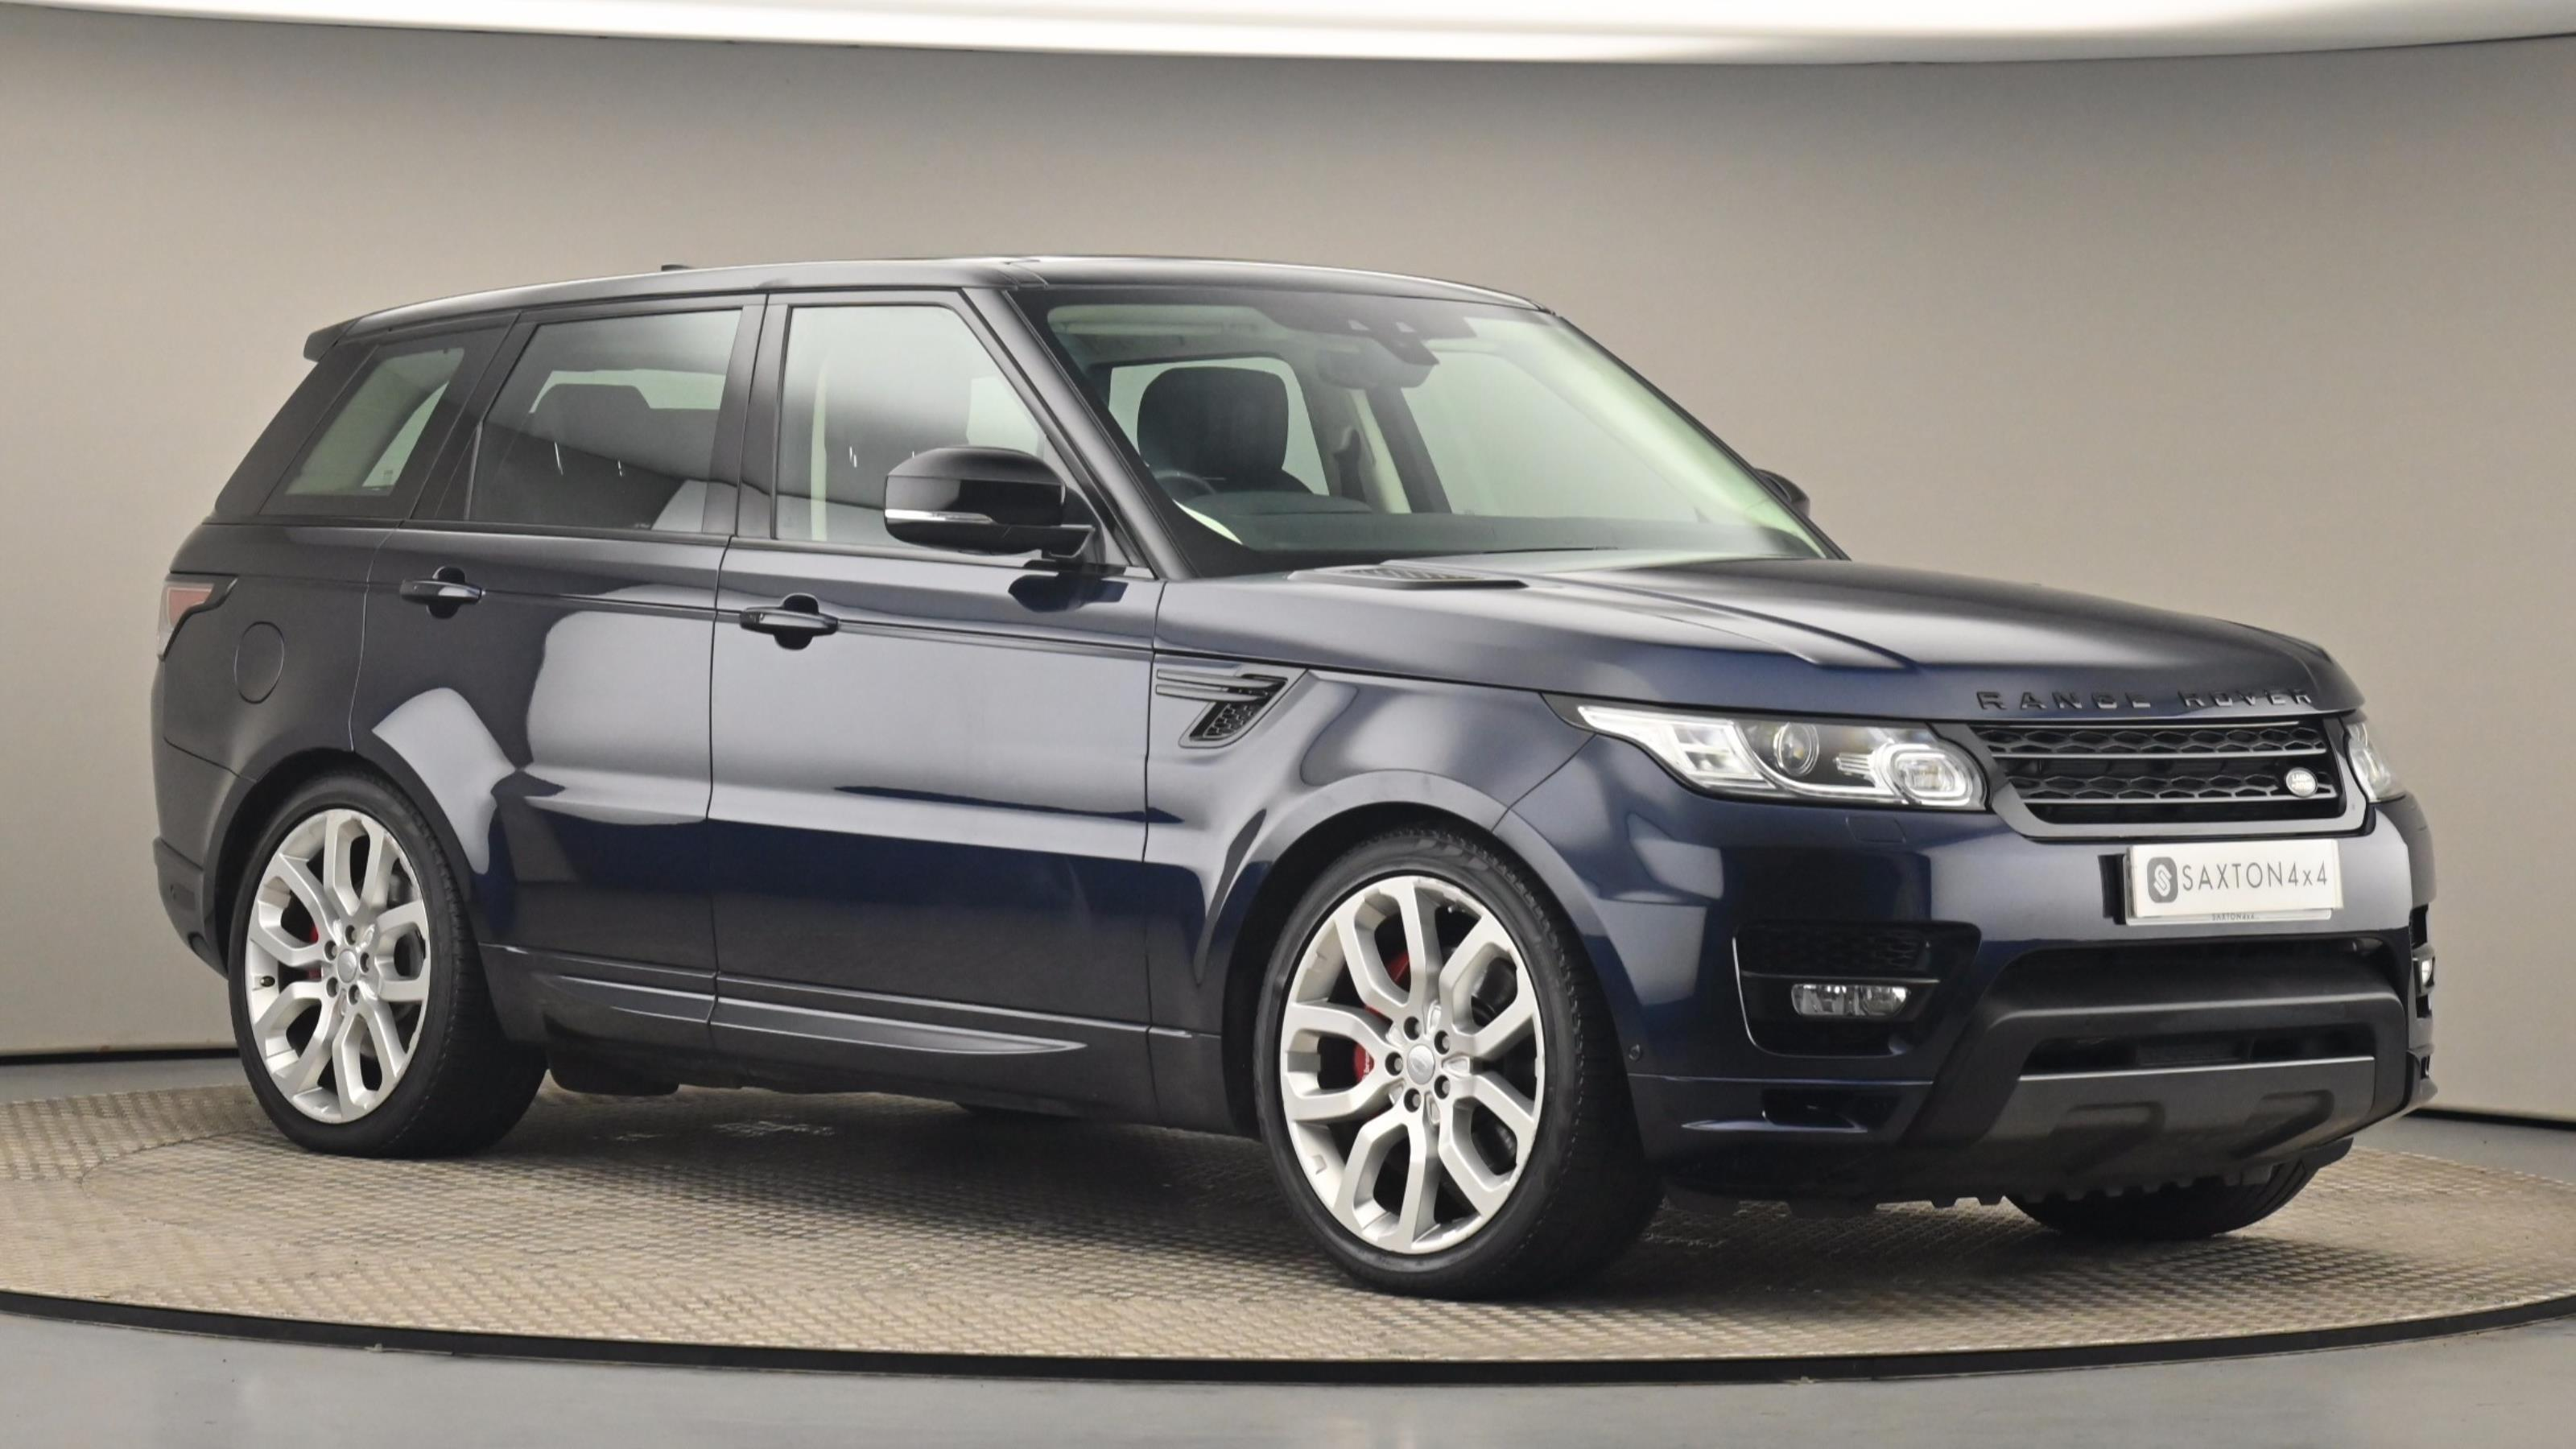 Used 2017 Land Rover RANGE ROVER SPORT 3.0 SDV6 [306] Autobiography Dynamic 5dr Auto BLUE at Saxton4x4